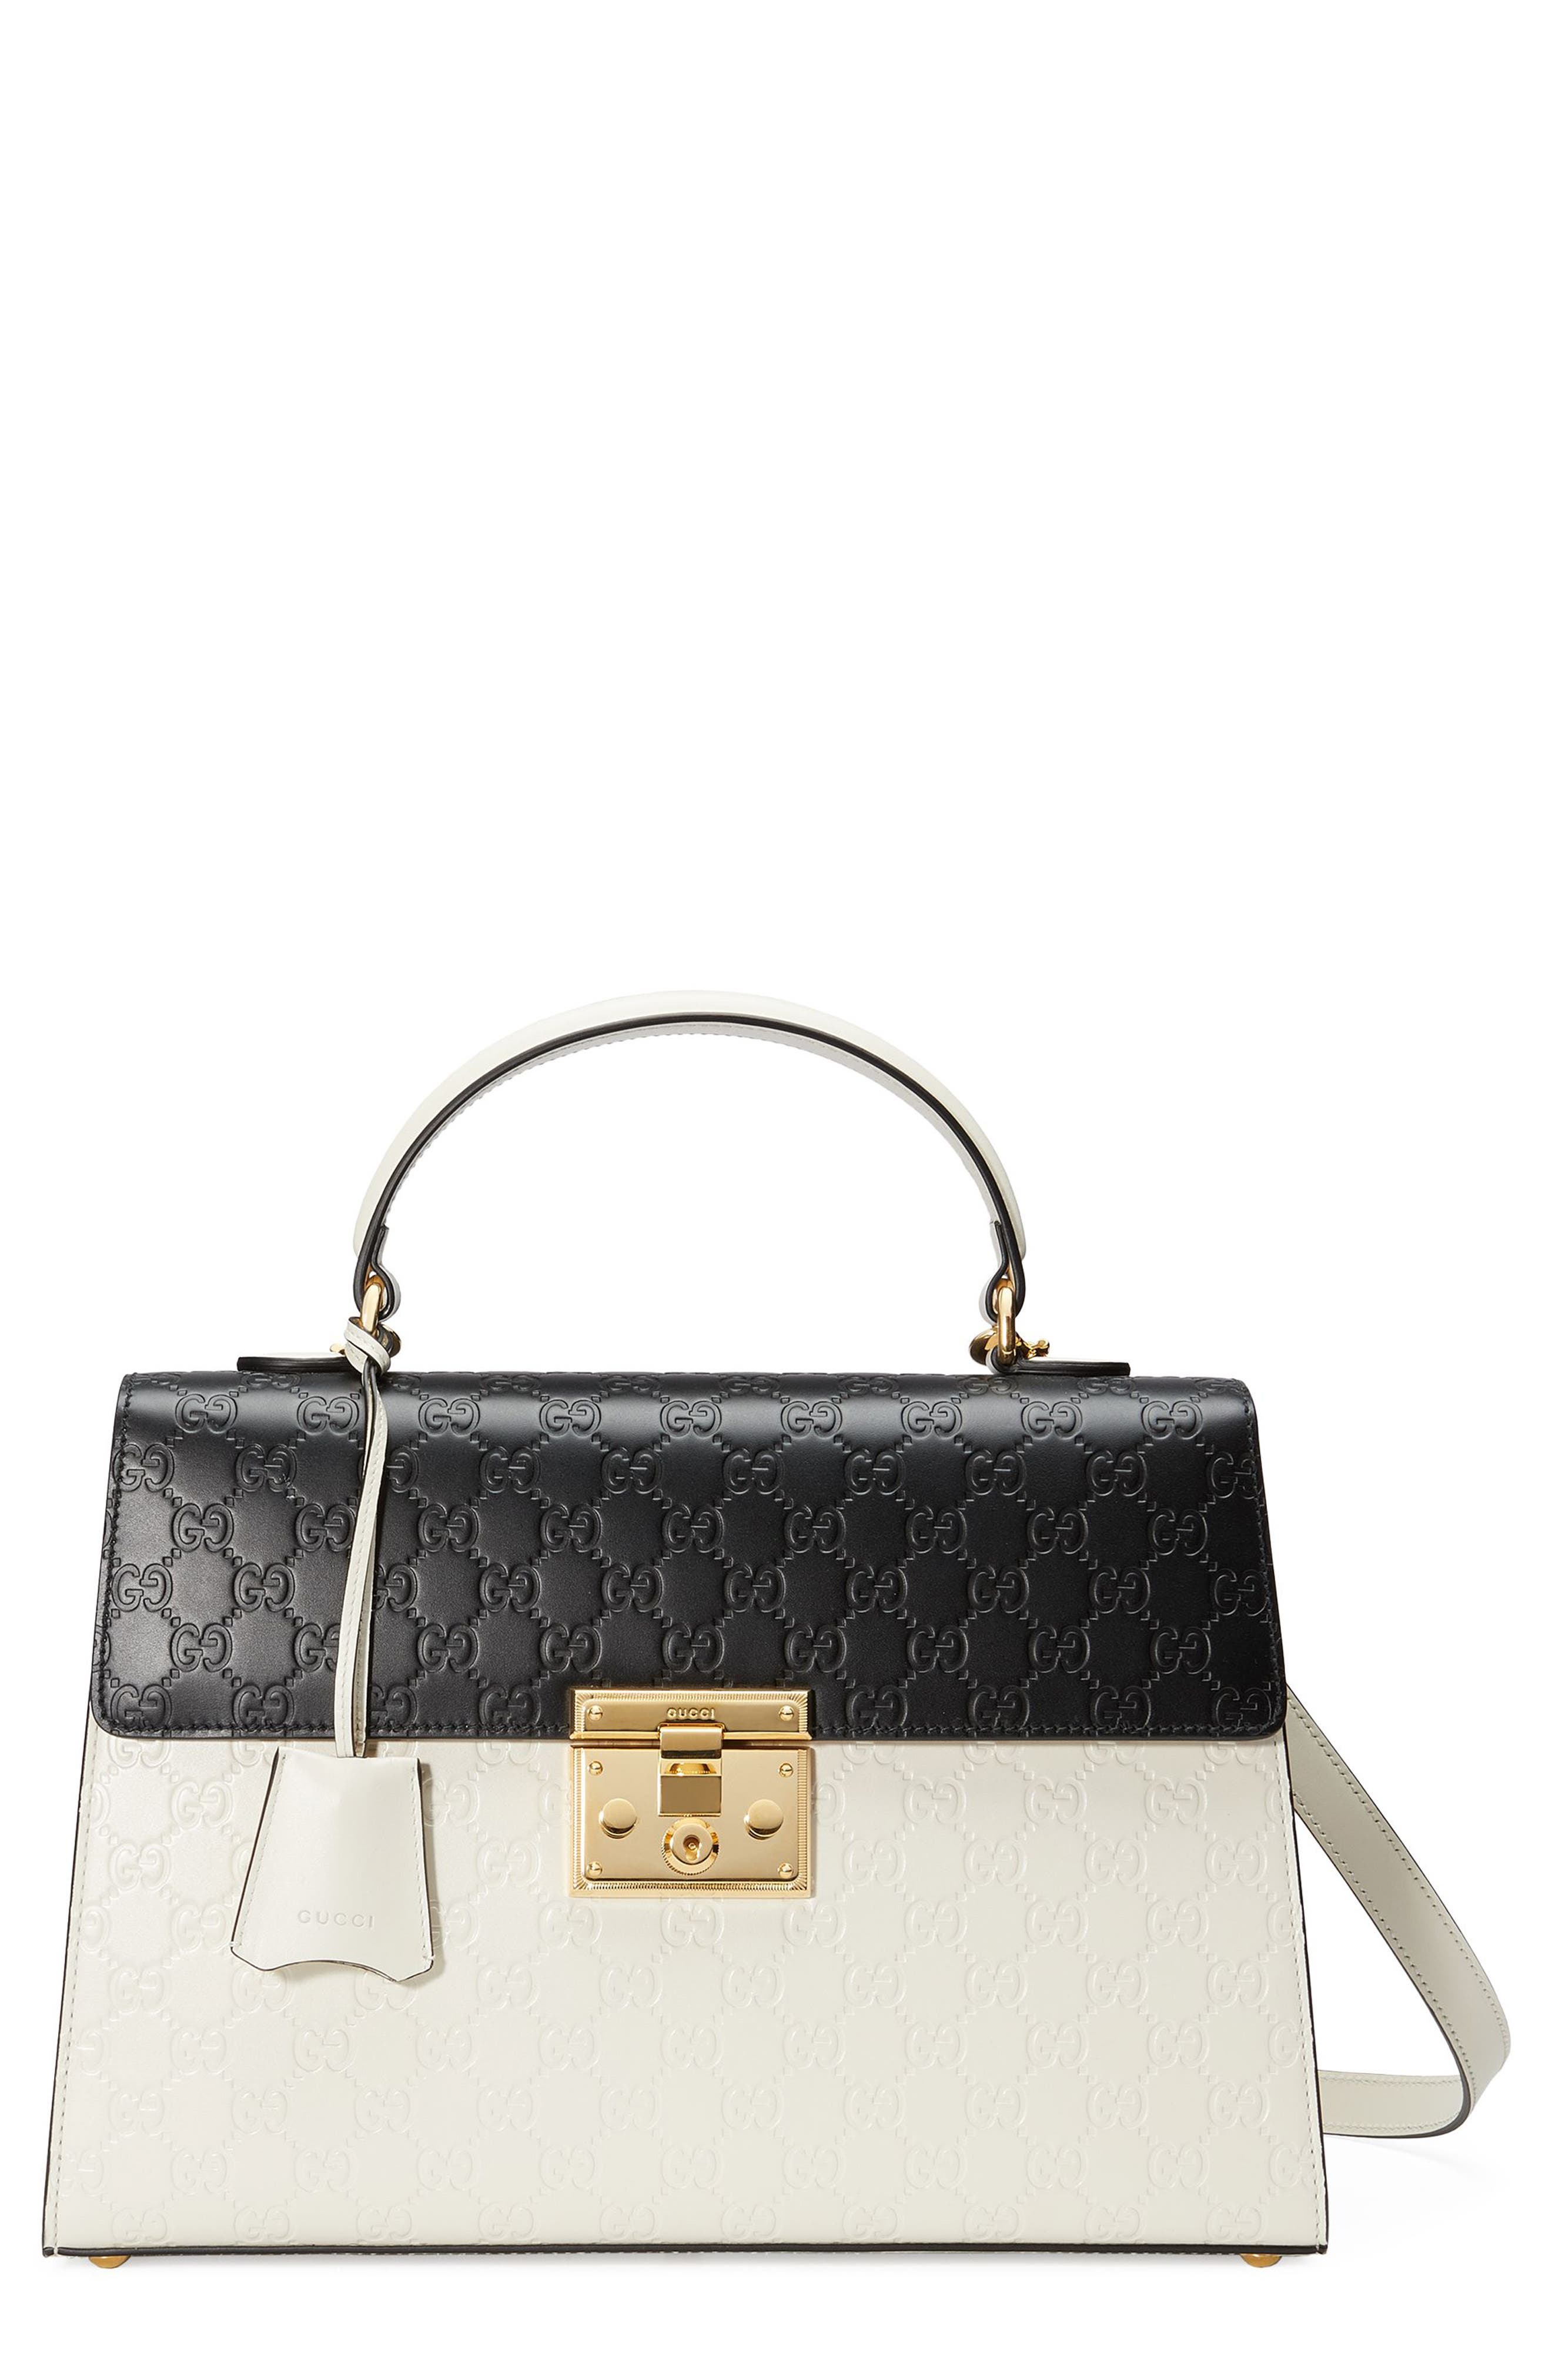 Medium Padlock Top Handles Signature Leather Satchel,                         Main,                         color, MYSTIC WHITE/NERO